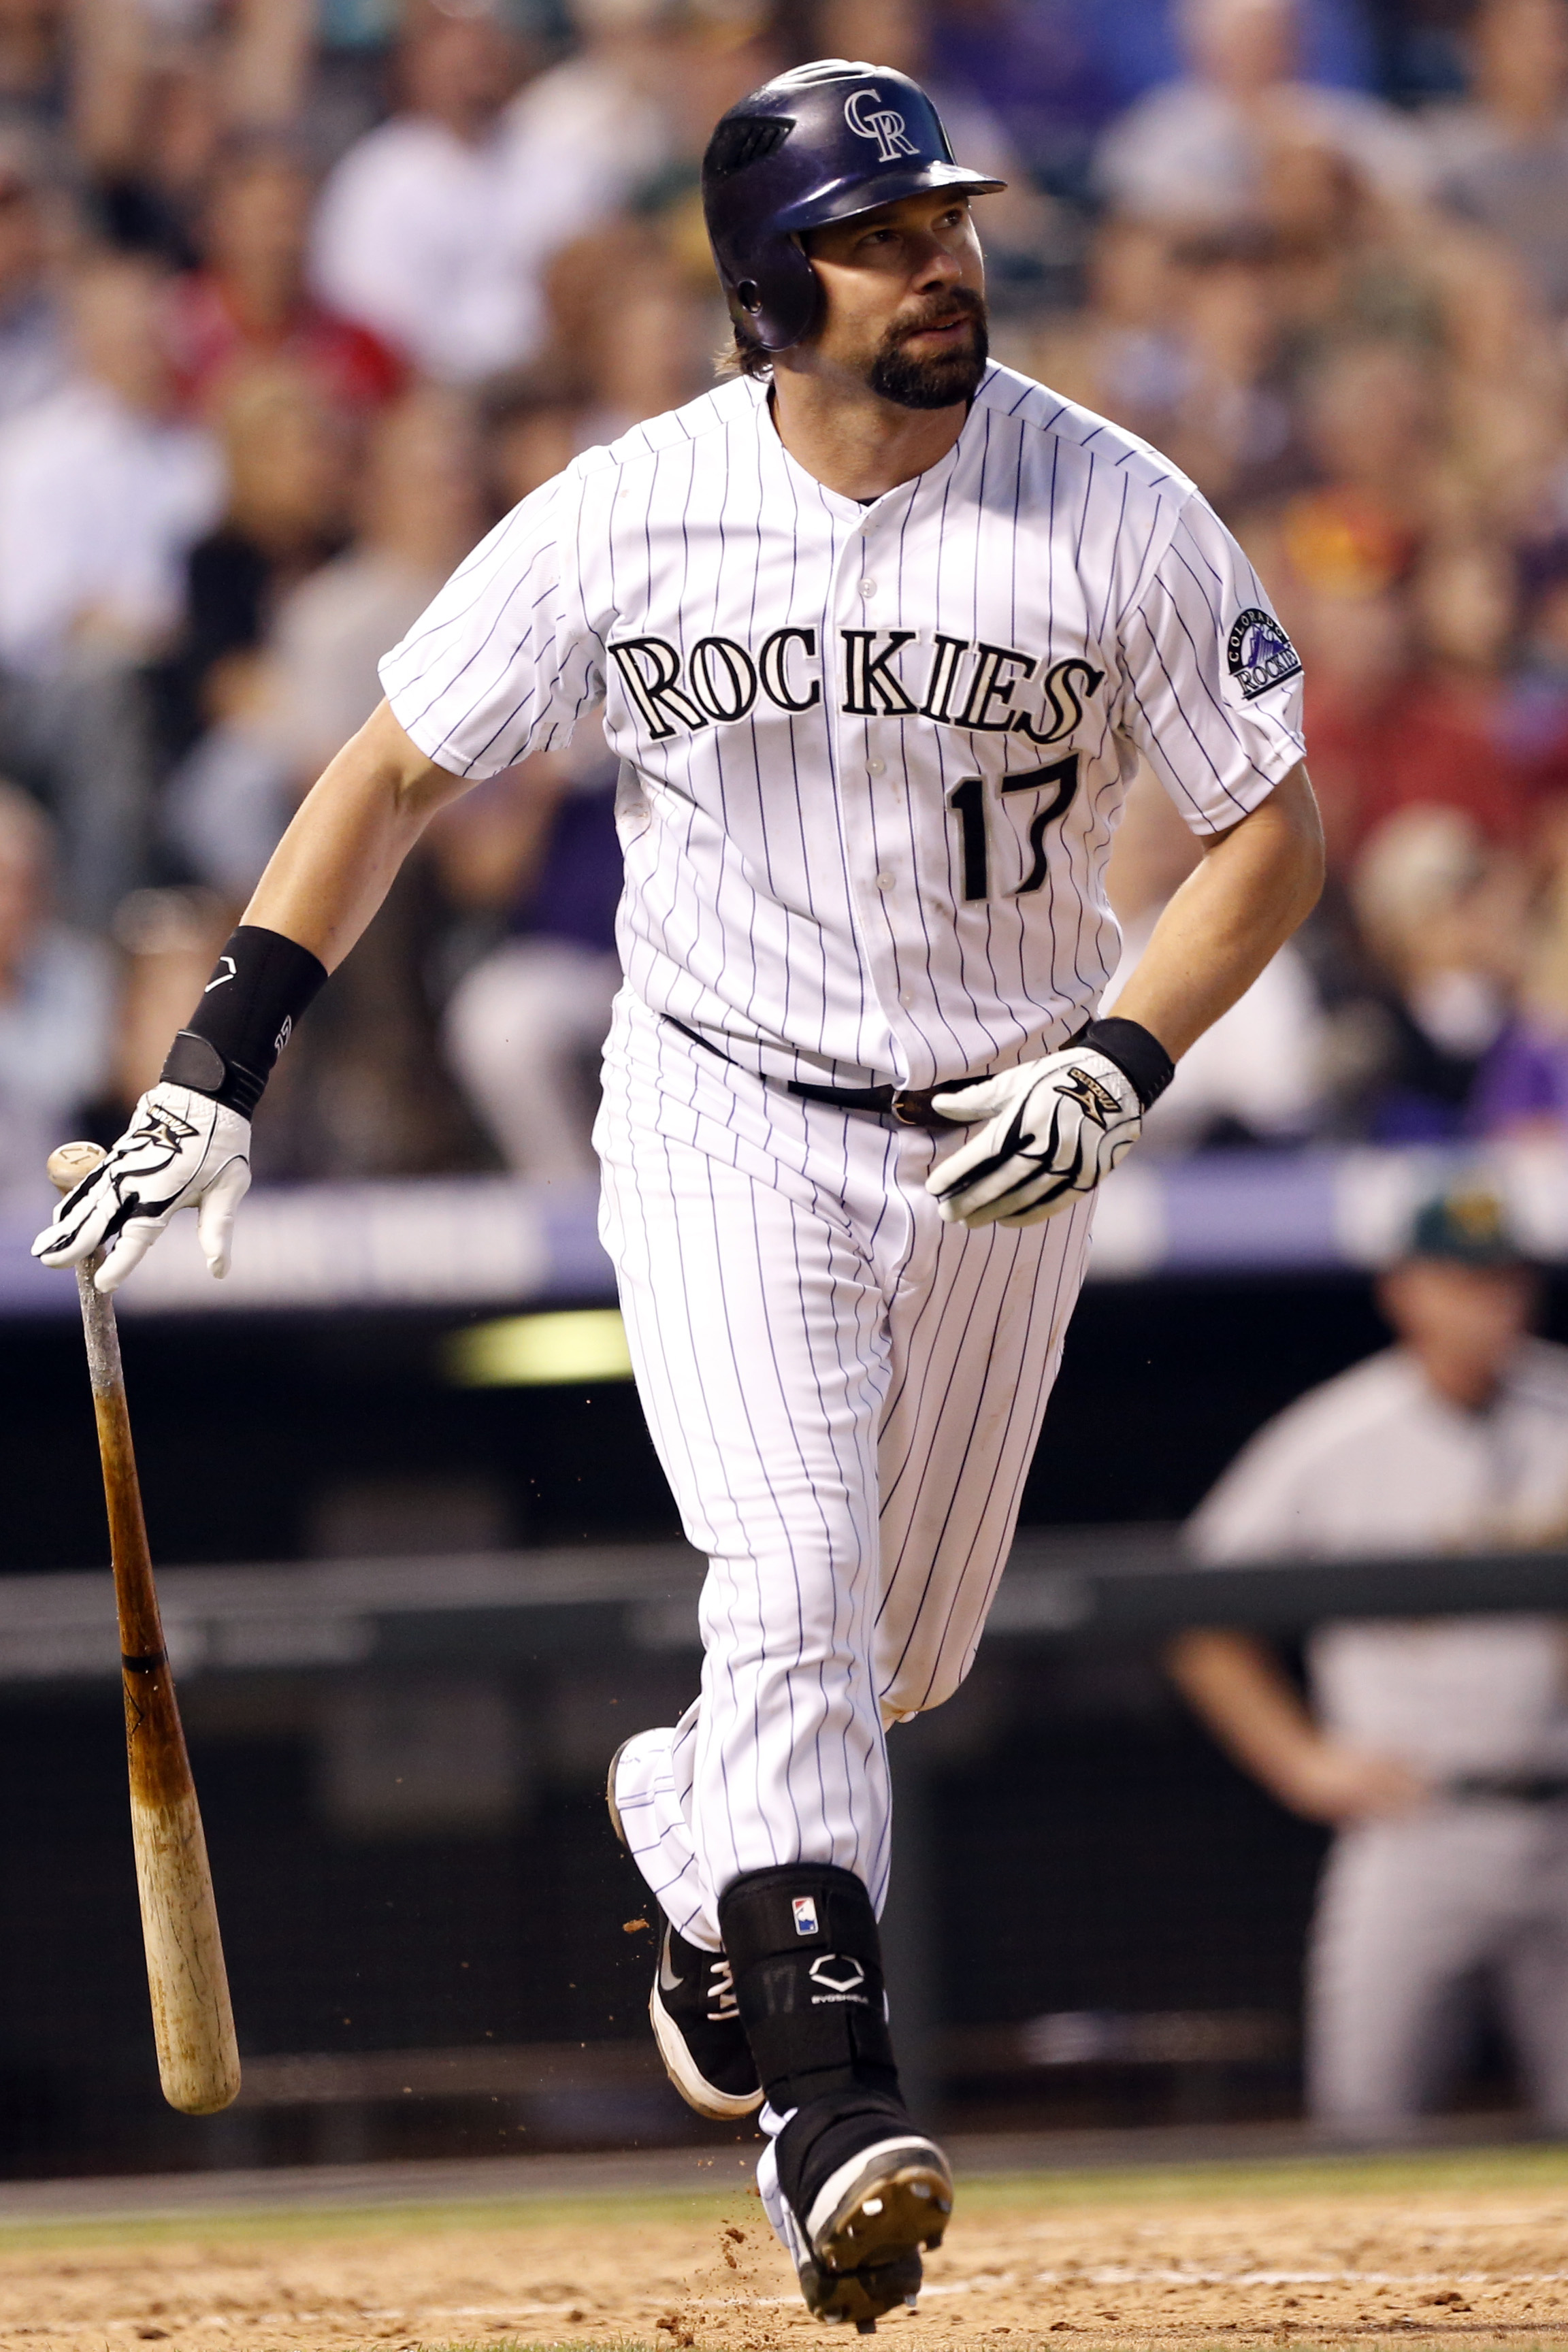 Todd helton arrested for dui washington times for Todd helton